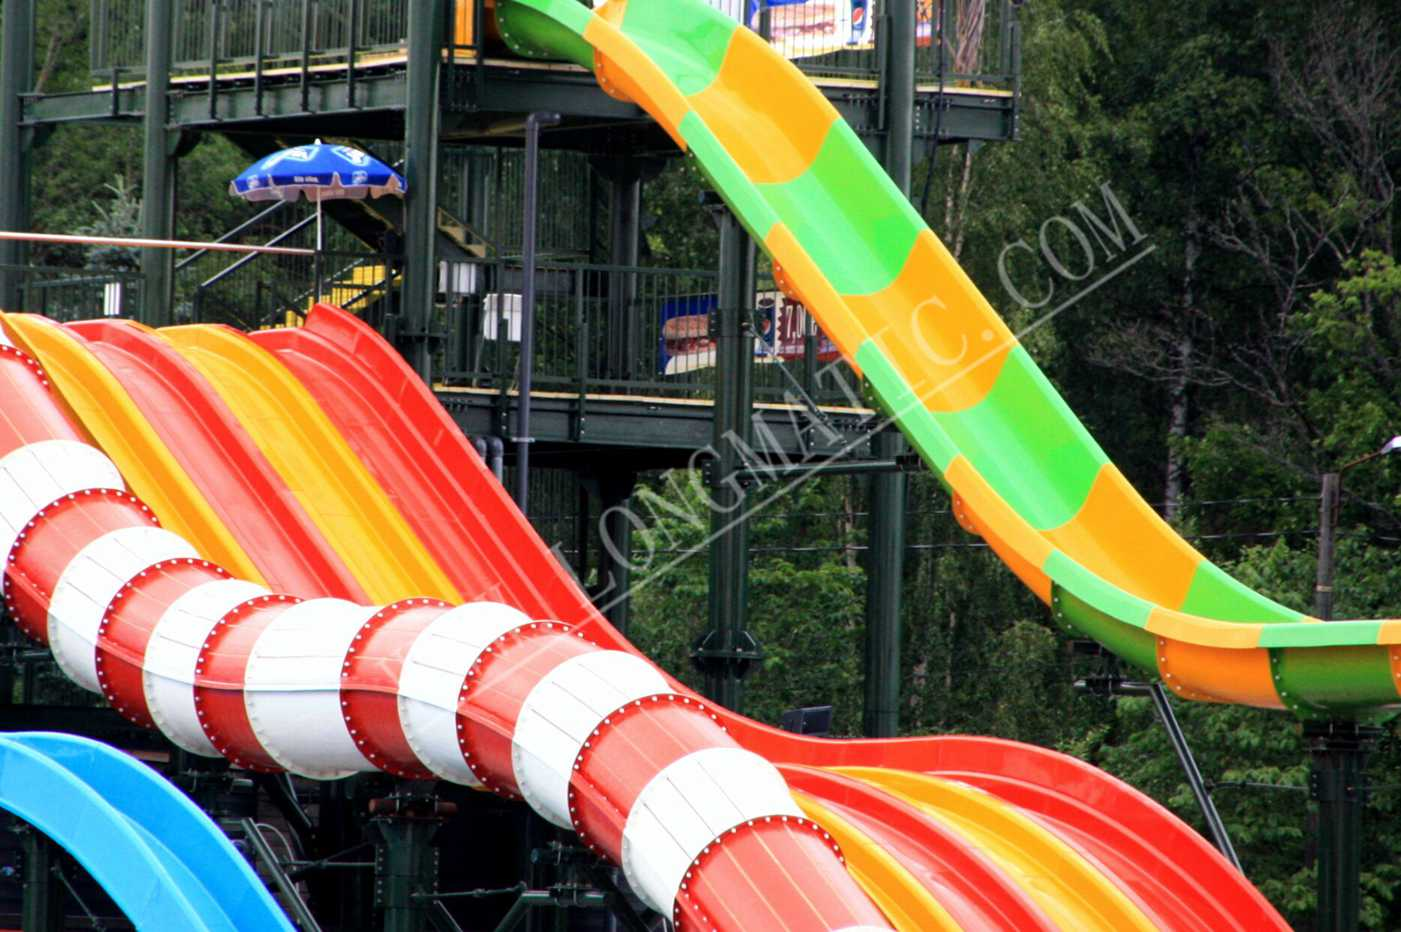 High speed water slide equipment